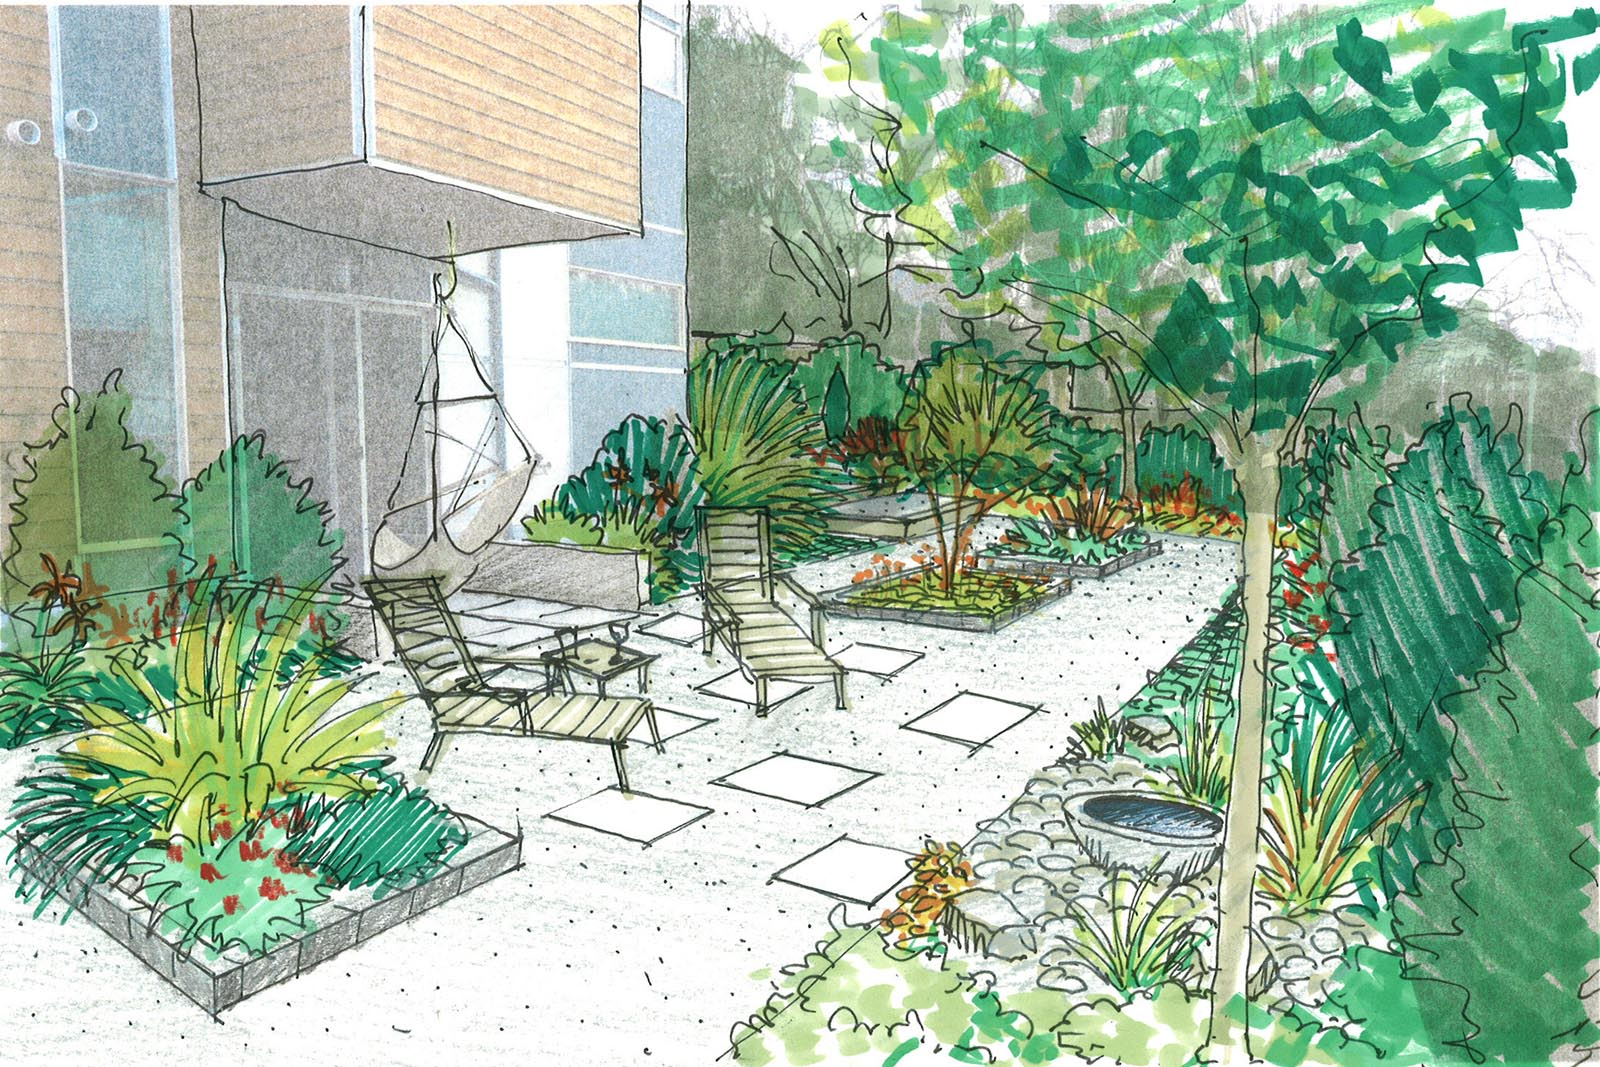 Pin residential landscape sketches and drawings on pinterest for Residential landscape designer